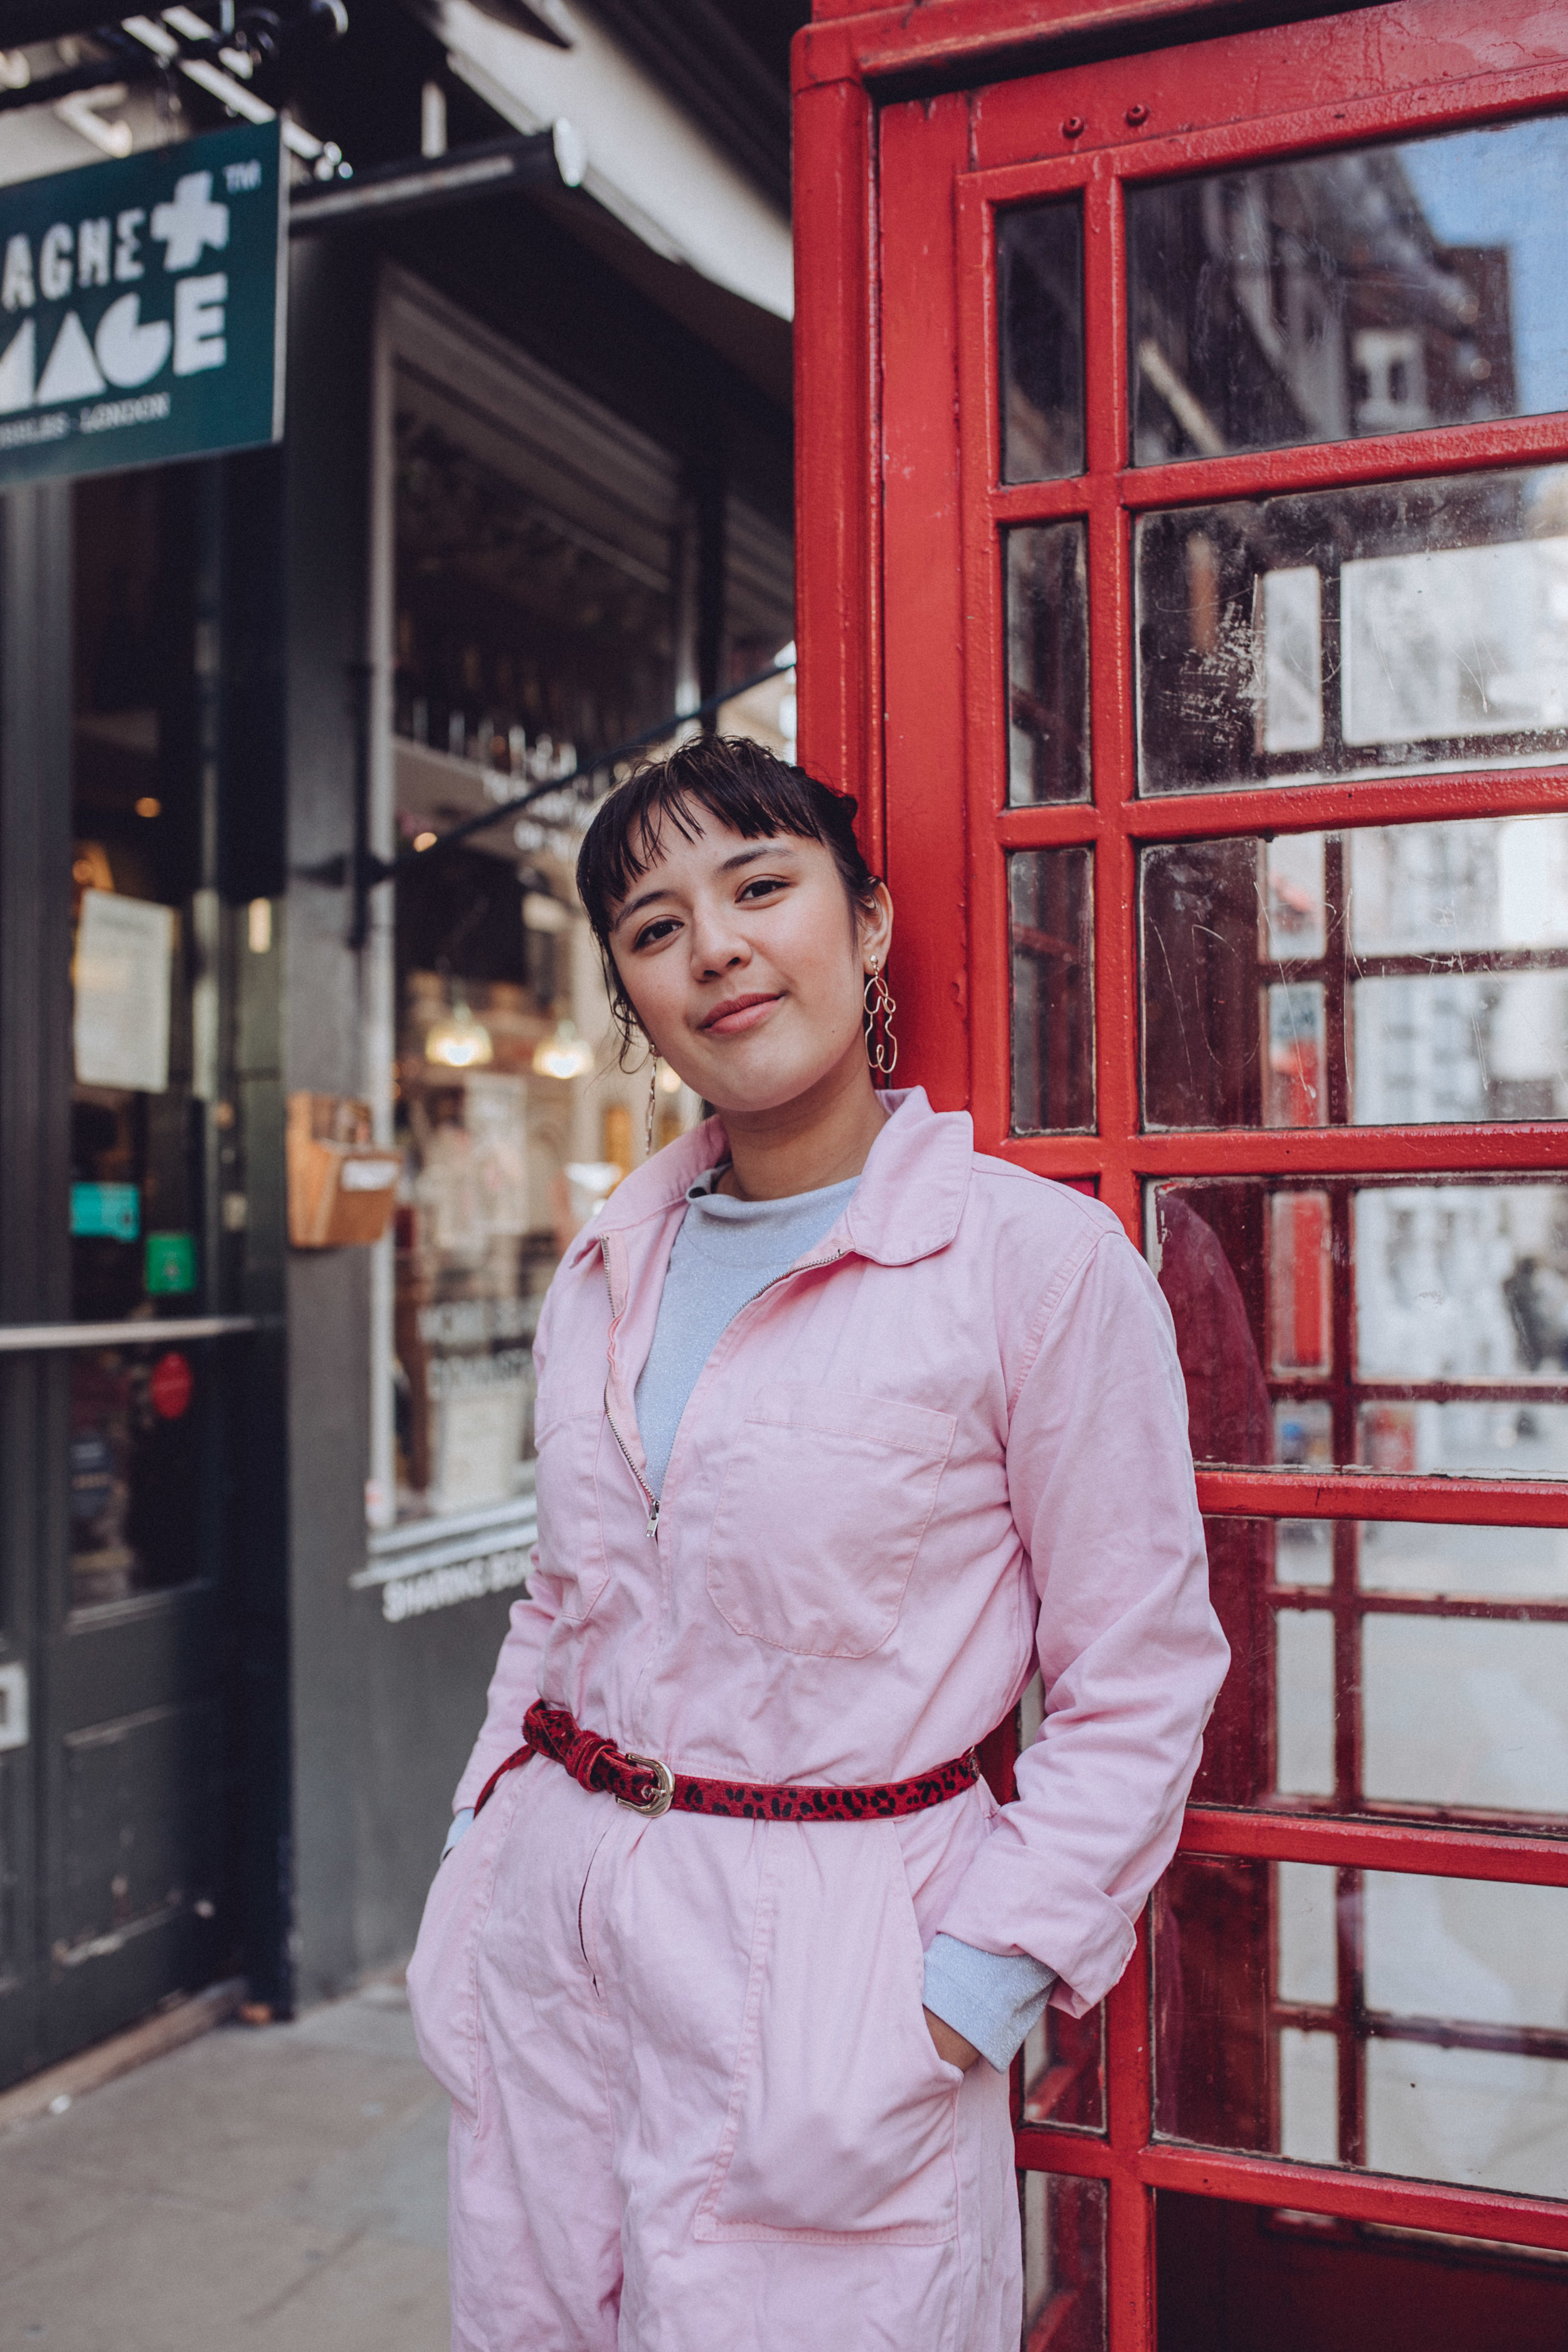 outfit details. - Boiler suitUO Rosie Pink Utility Jumpsuit, £79 at Urban OutfittersBeltRed leopard print belt, bought years ago at Argyle Centre in Hong KongEarringsStatement earrings, gifted but from Monki(Sad) turtleneck topWhite turtleneck top, bought at Monki years ago